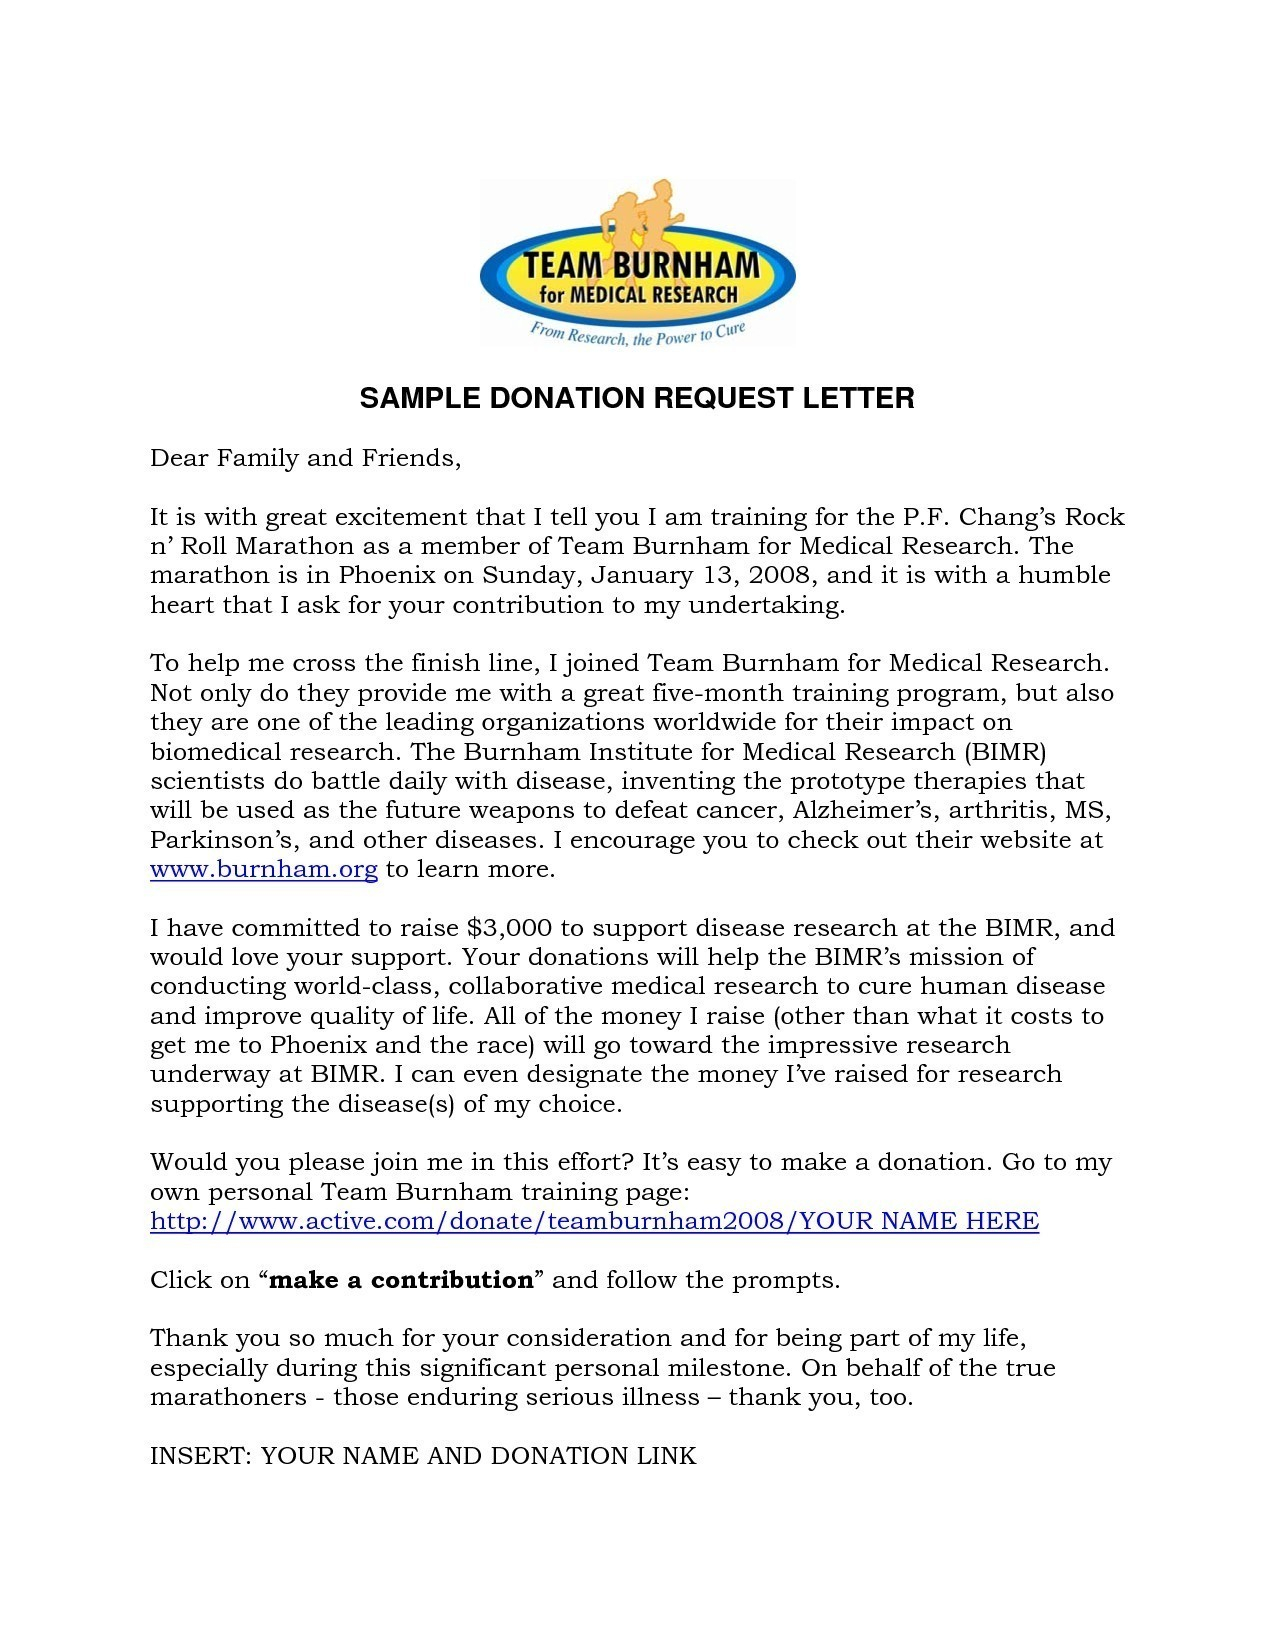 Letter to solicit Donations Template - Samples Letters Request Donation New Sample Letters for Request for